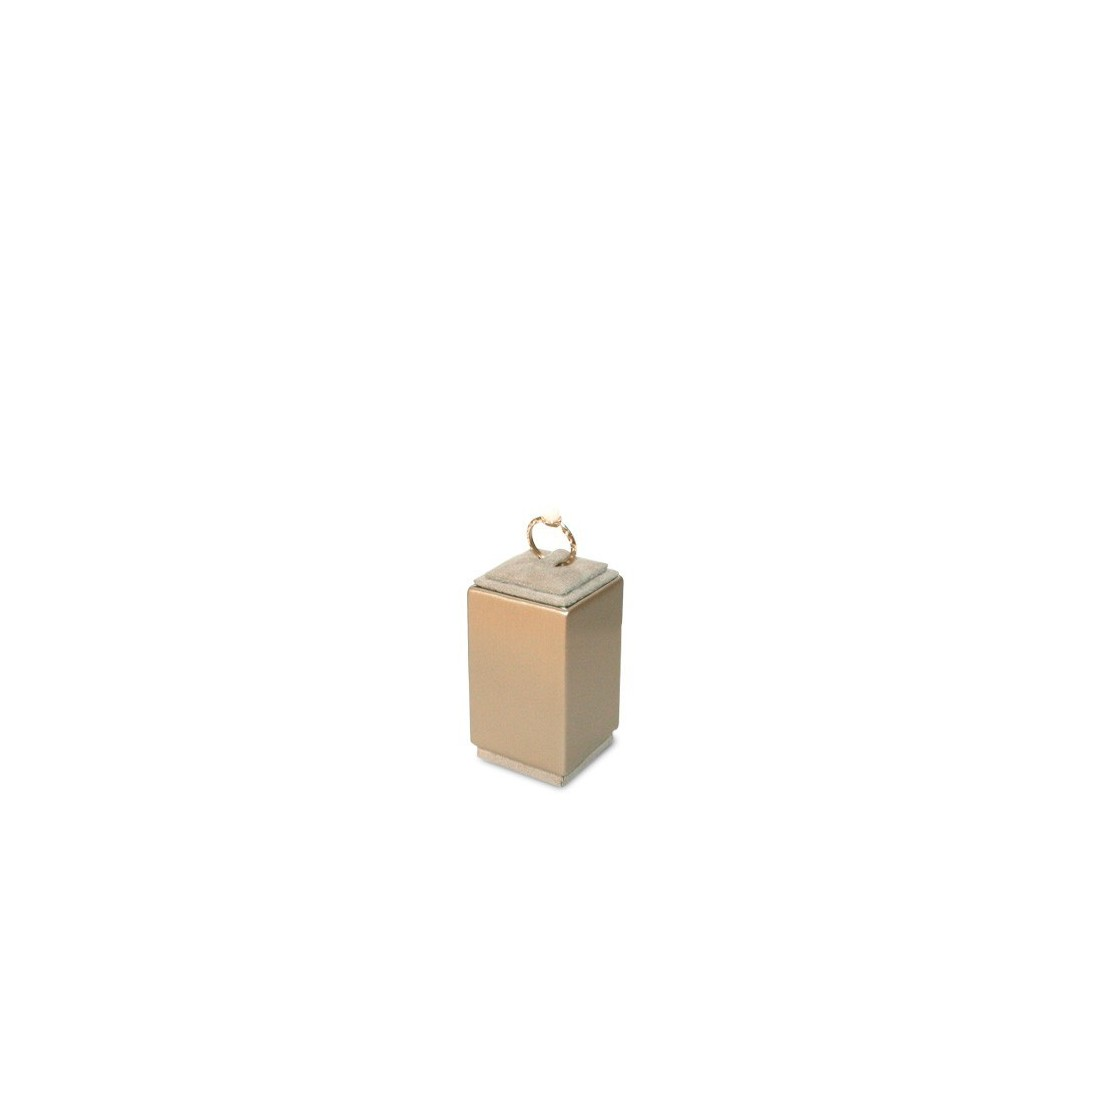 Display Stand for Ring, M